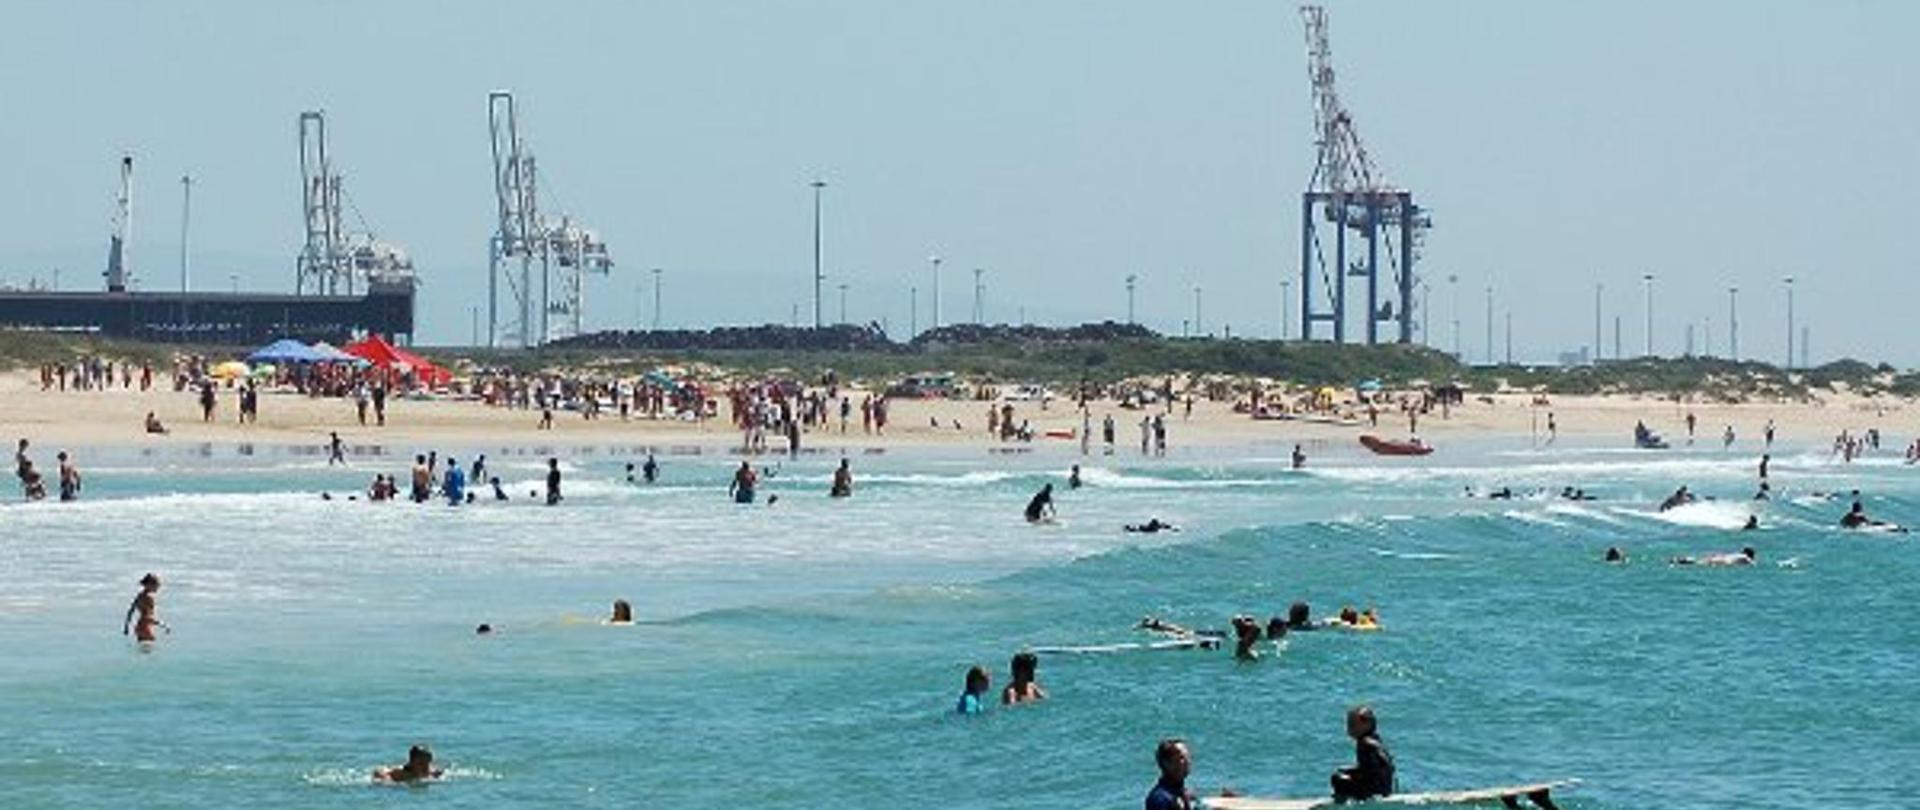 729fd_Kings_Beach_20120226.jpg